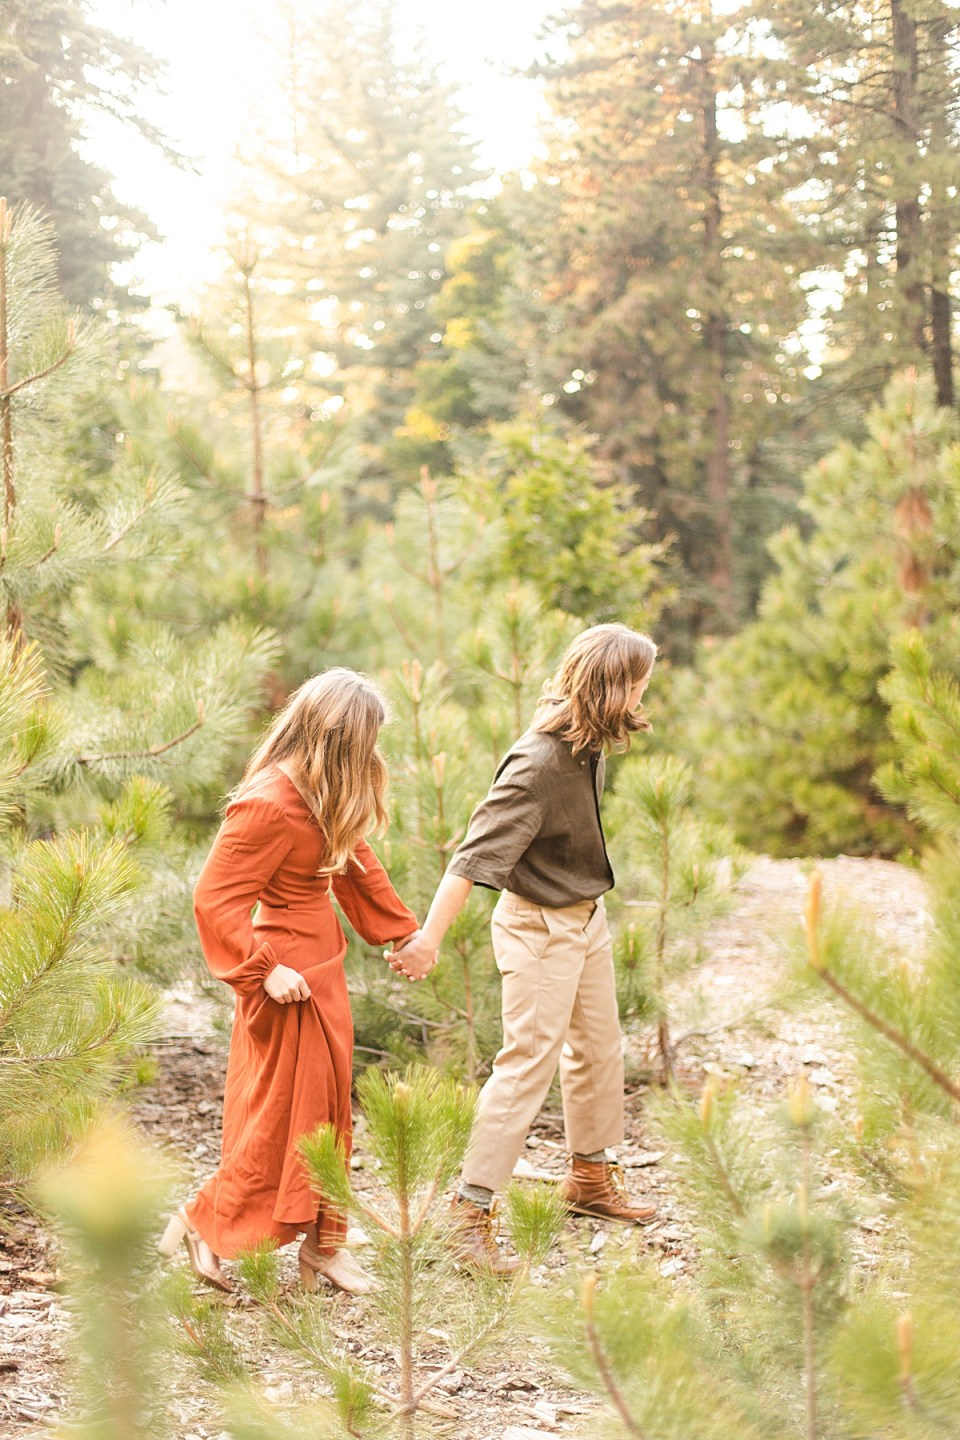 Rothwell leading Abby by the hand deeper into the forest during their Lake Arrowhead Engagement session.